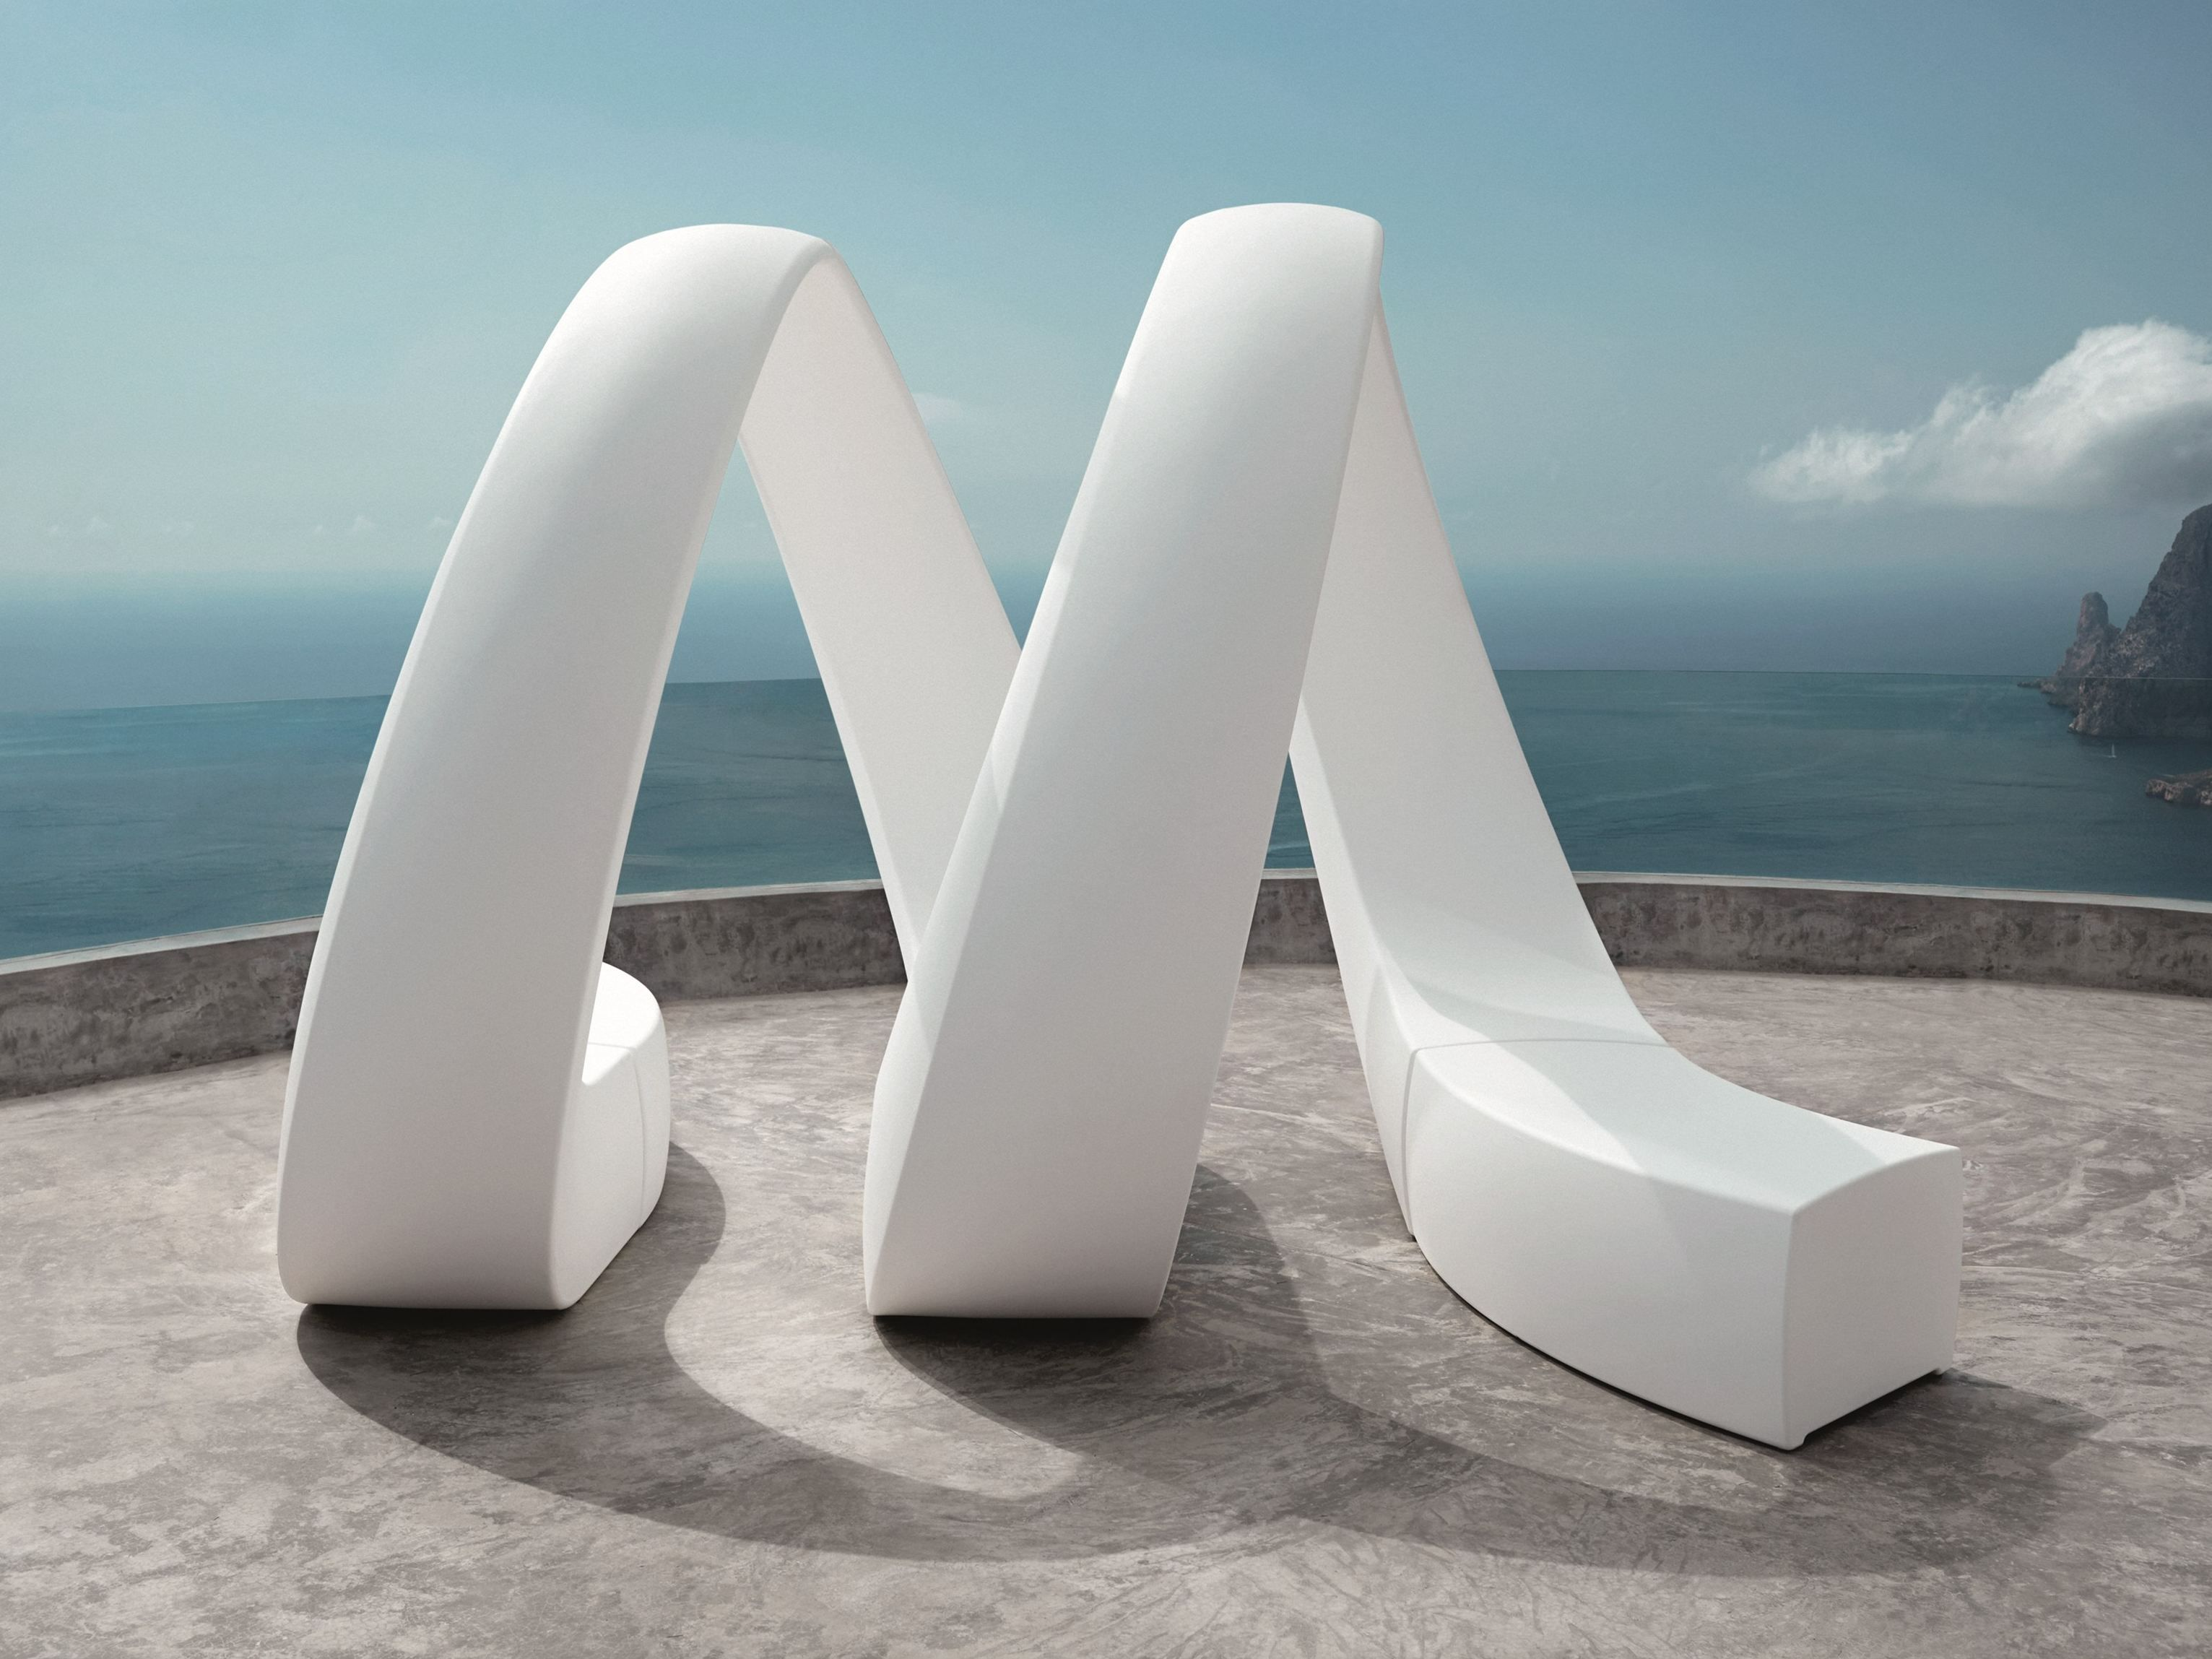 Banc de jardin composable and by vondom design fabio novembre produits design pinterest - Imitazioni mobili design ...